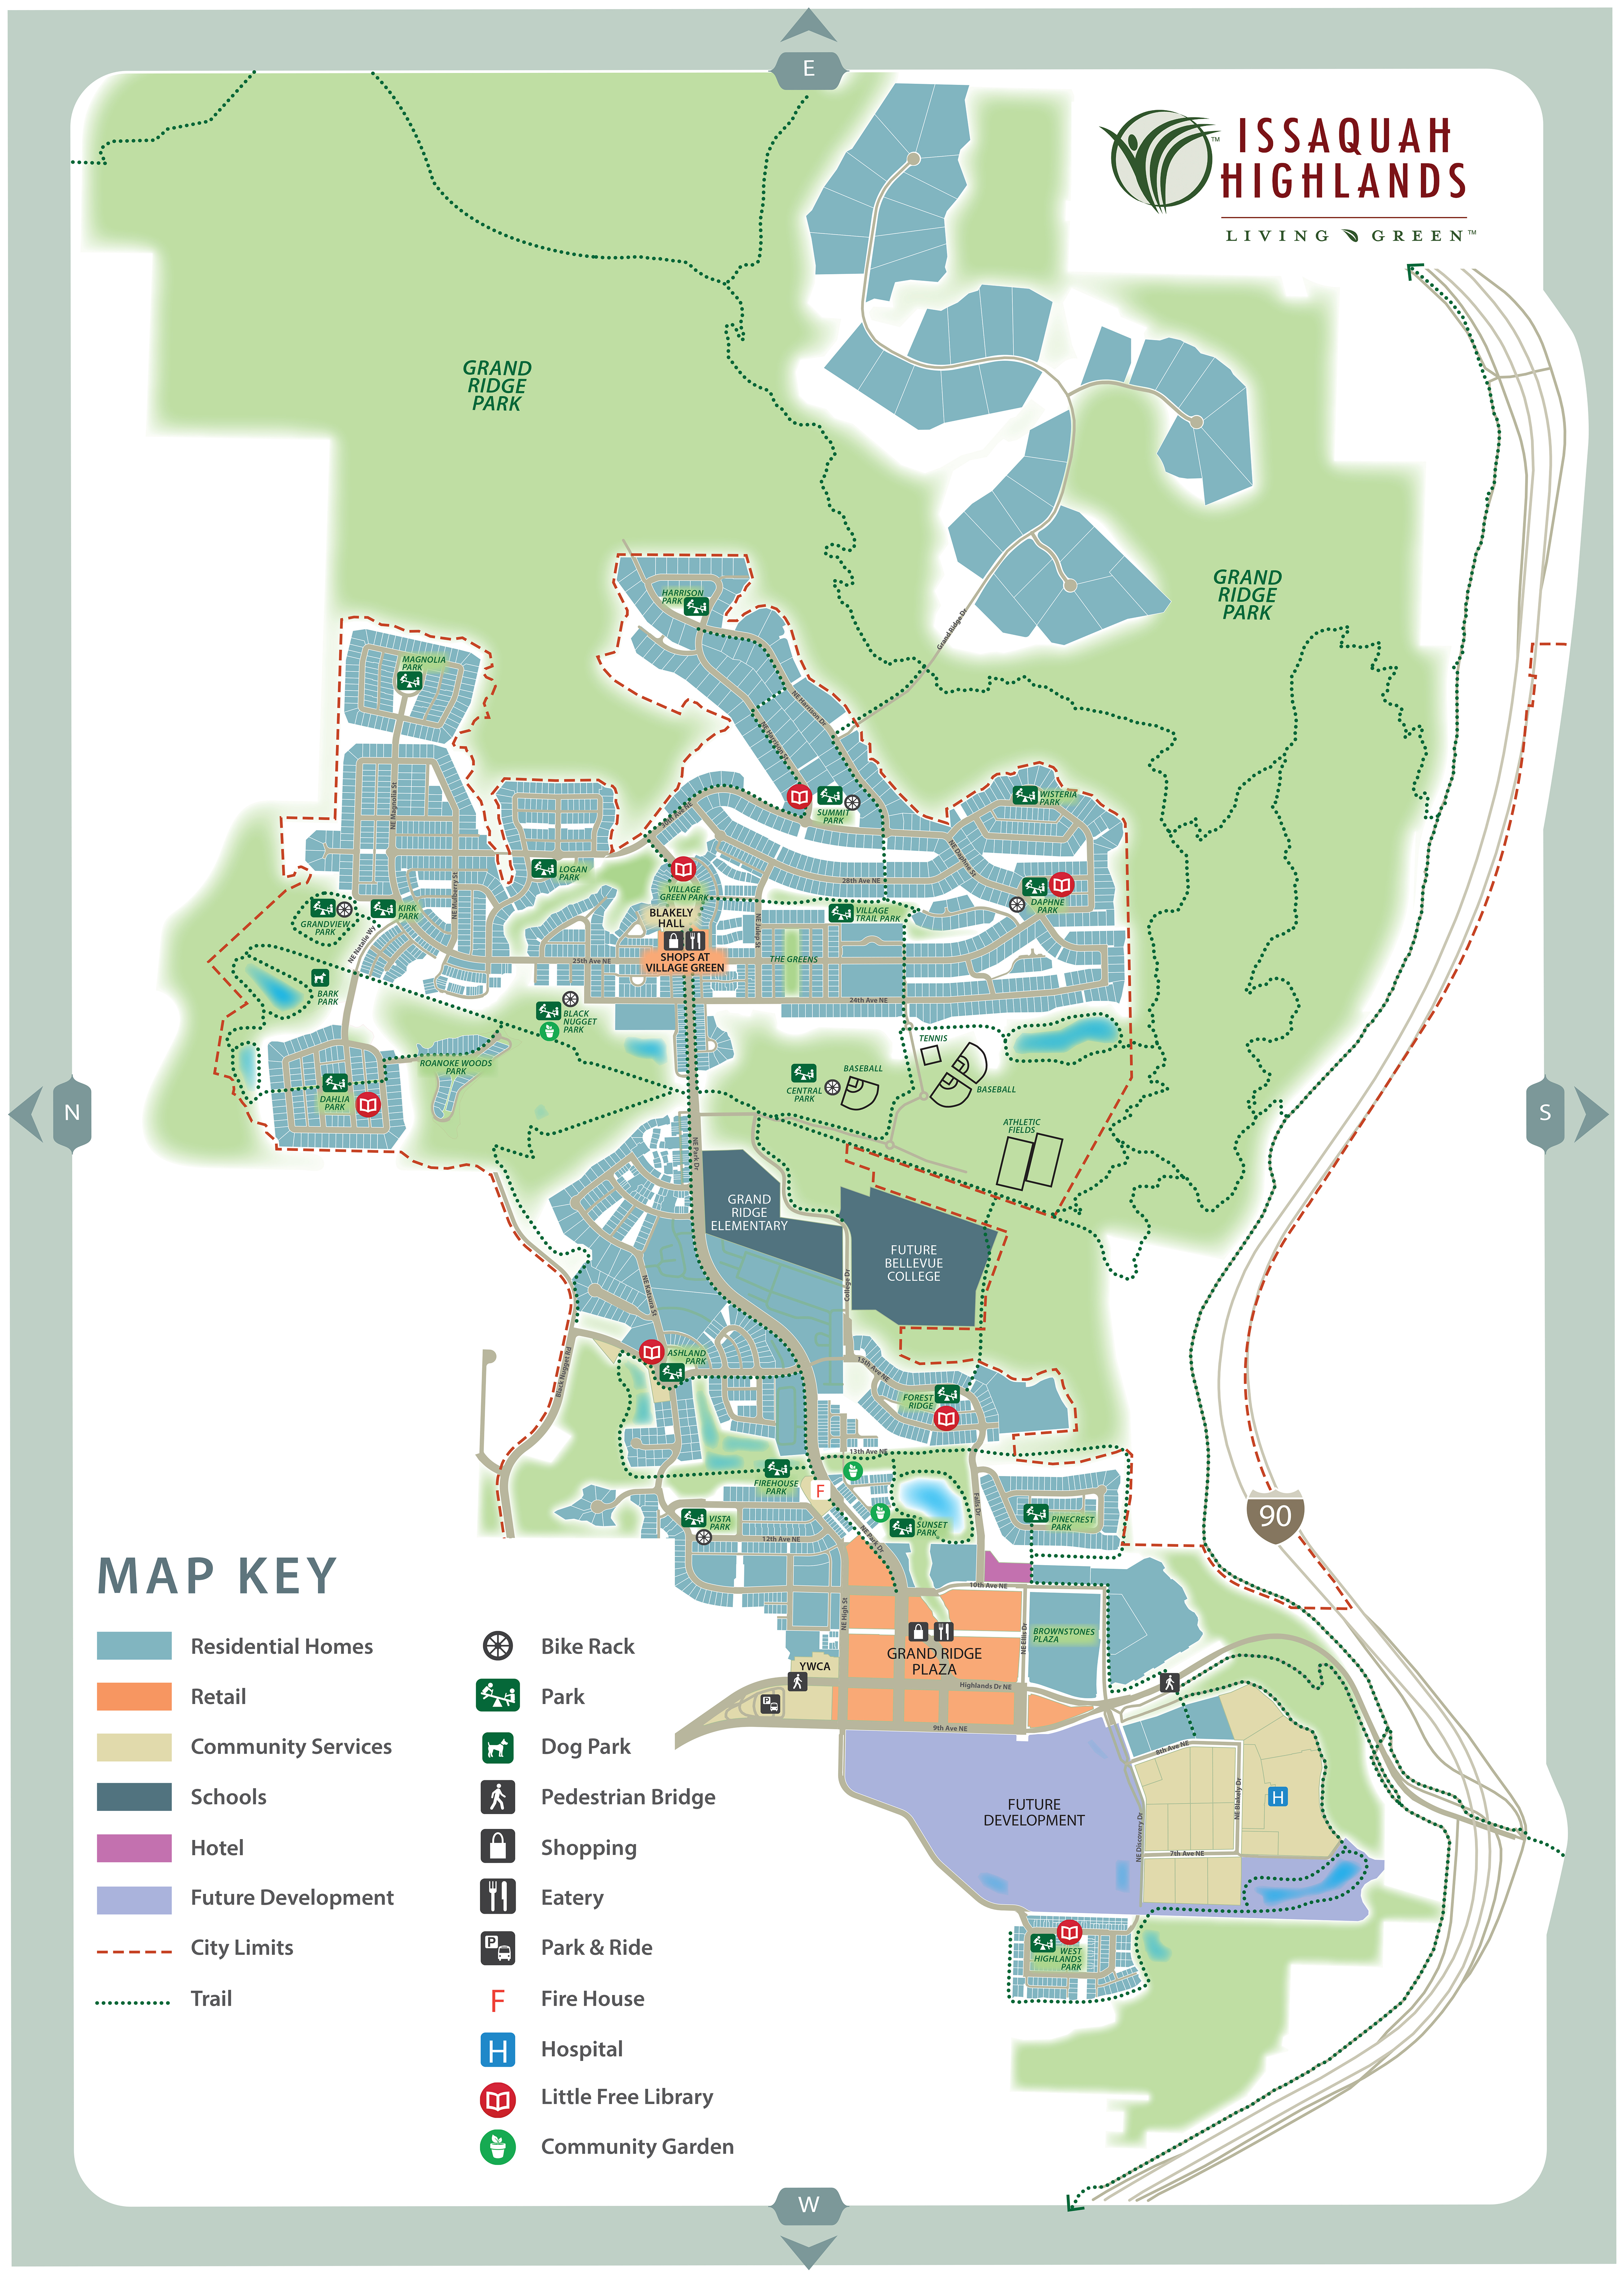 Maps And Webcams Issaquah Highlands